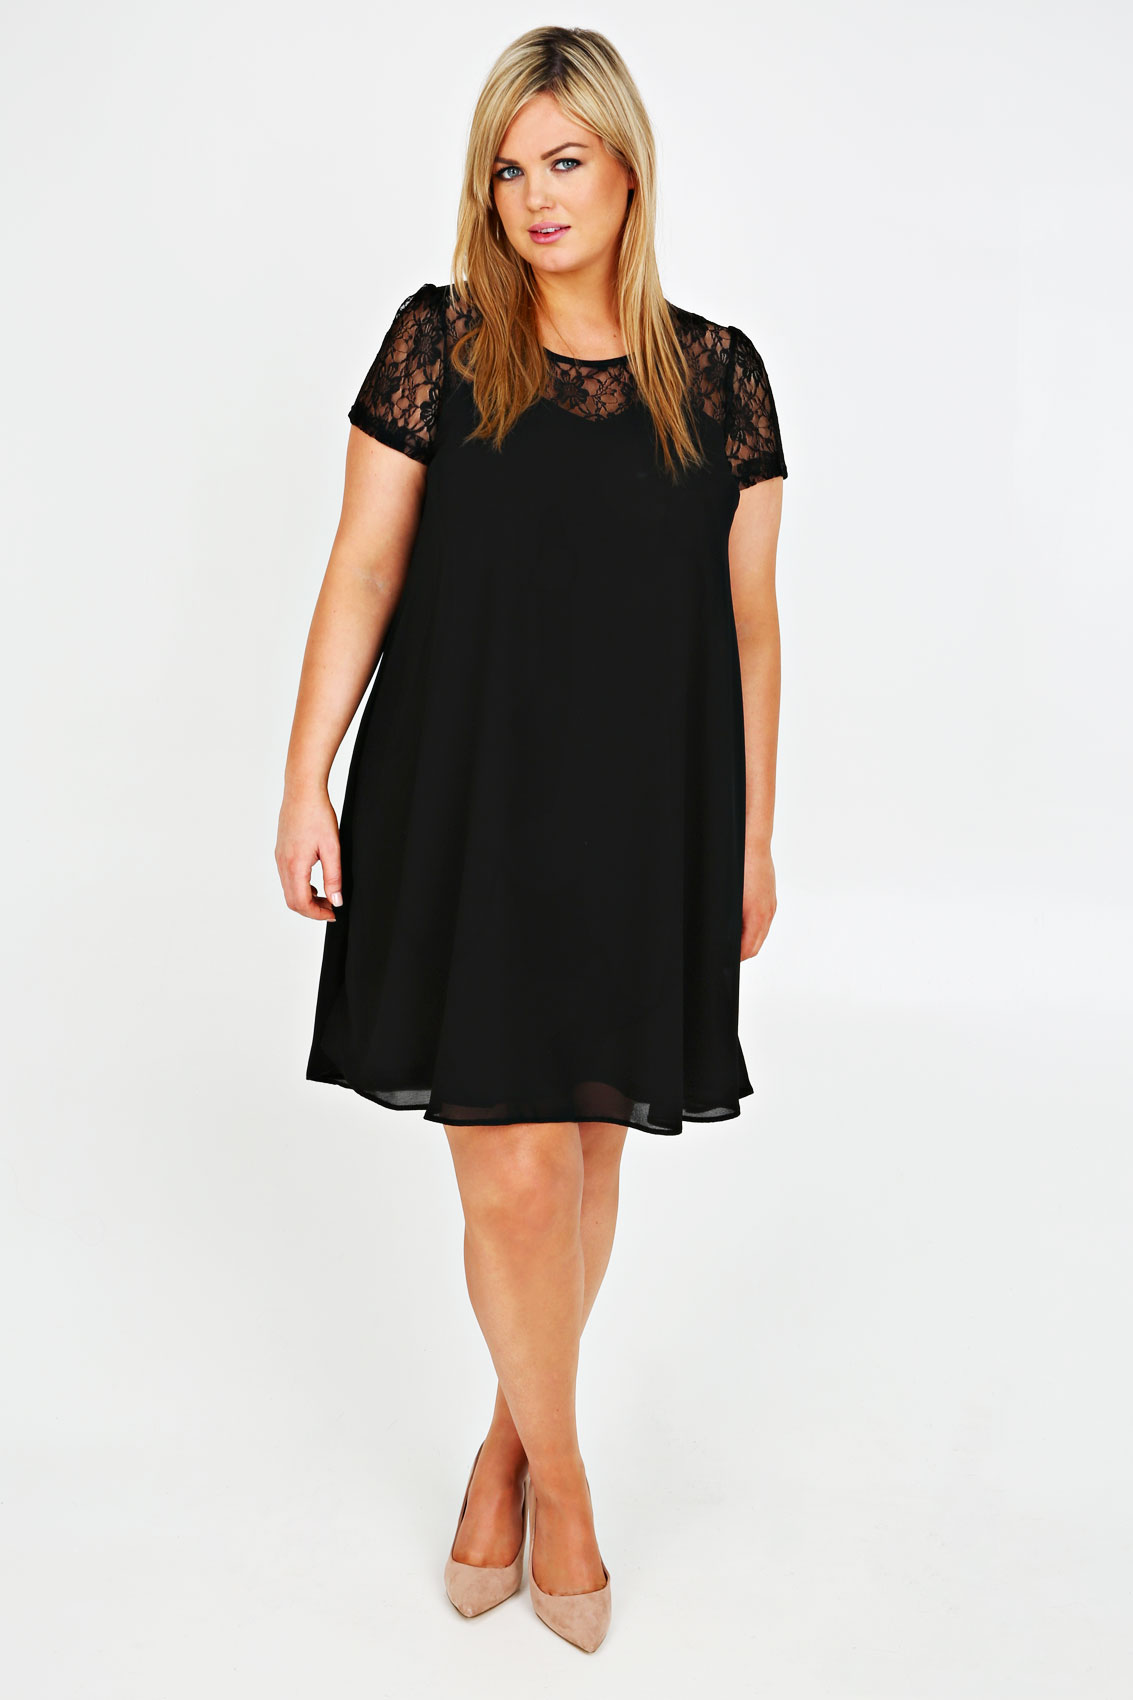 Yours Clothing Plus Size Dresses 85